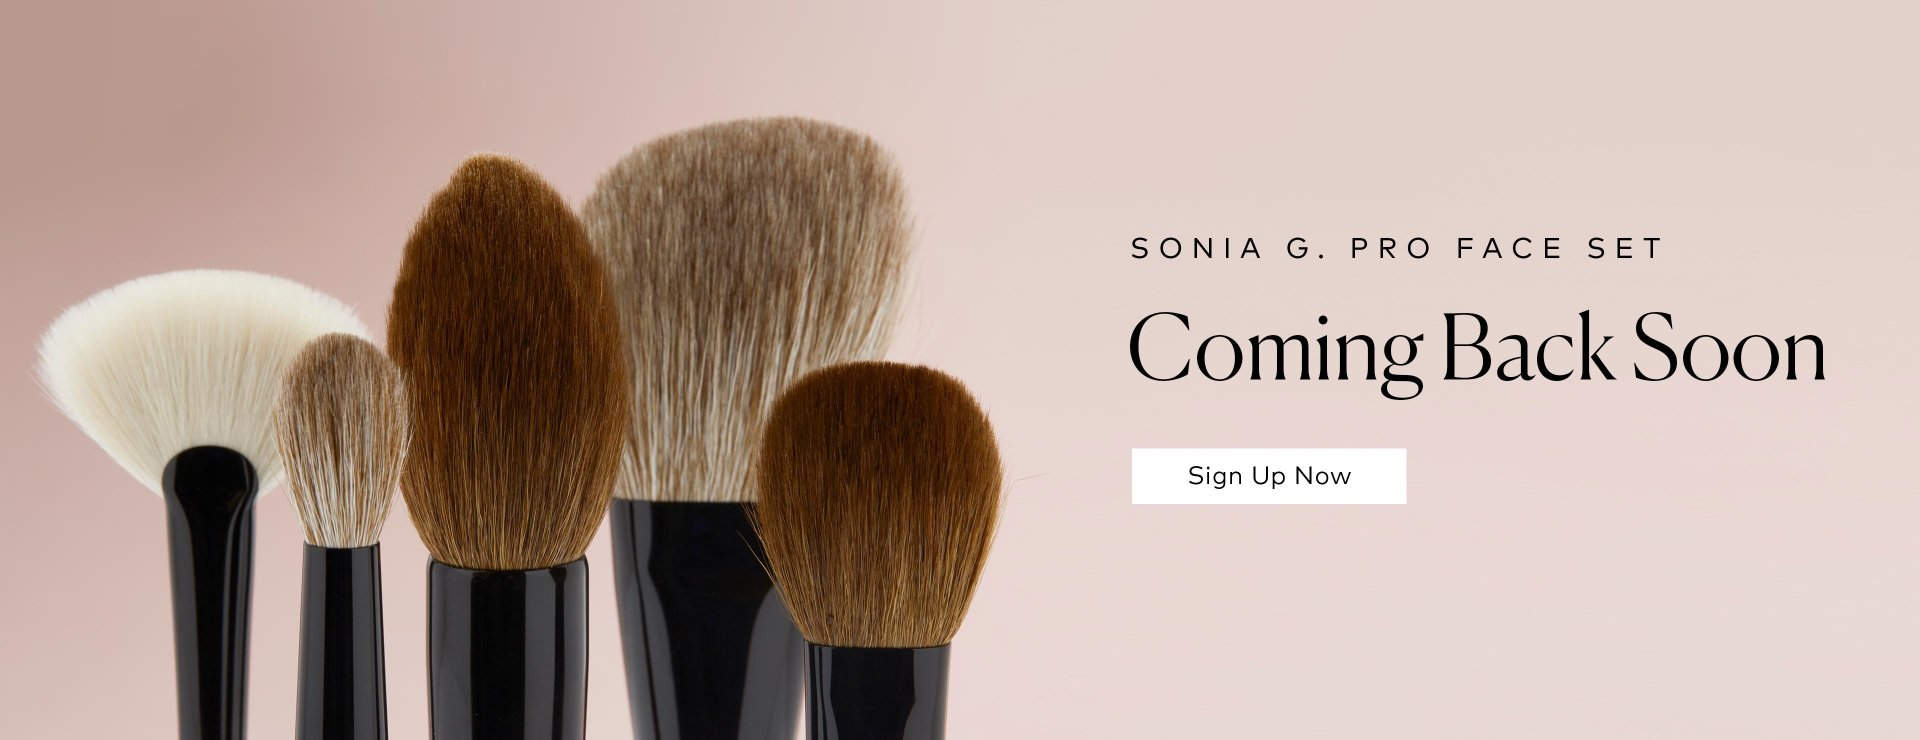 Sonia G.'s Pro Face Set Restock - Sign Up Now.